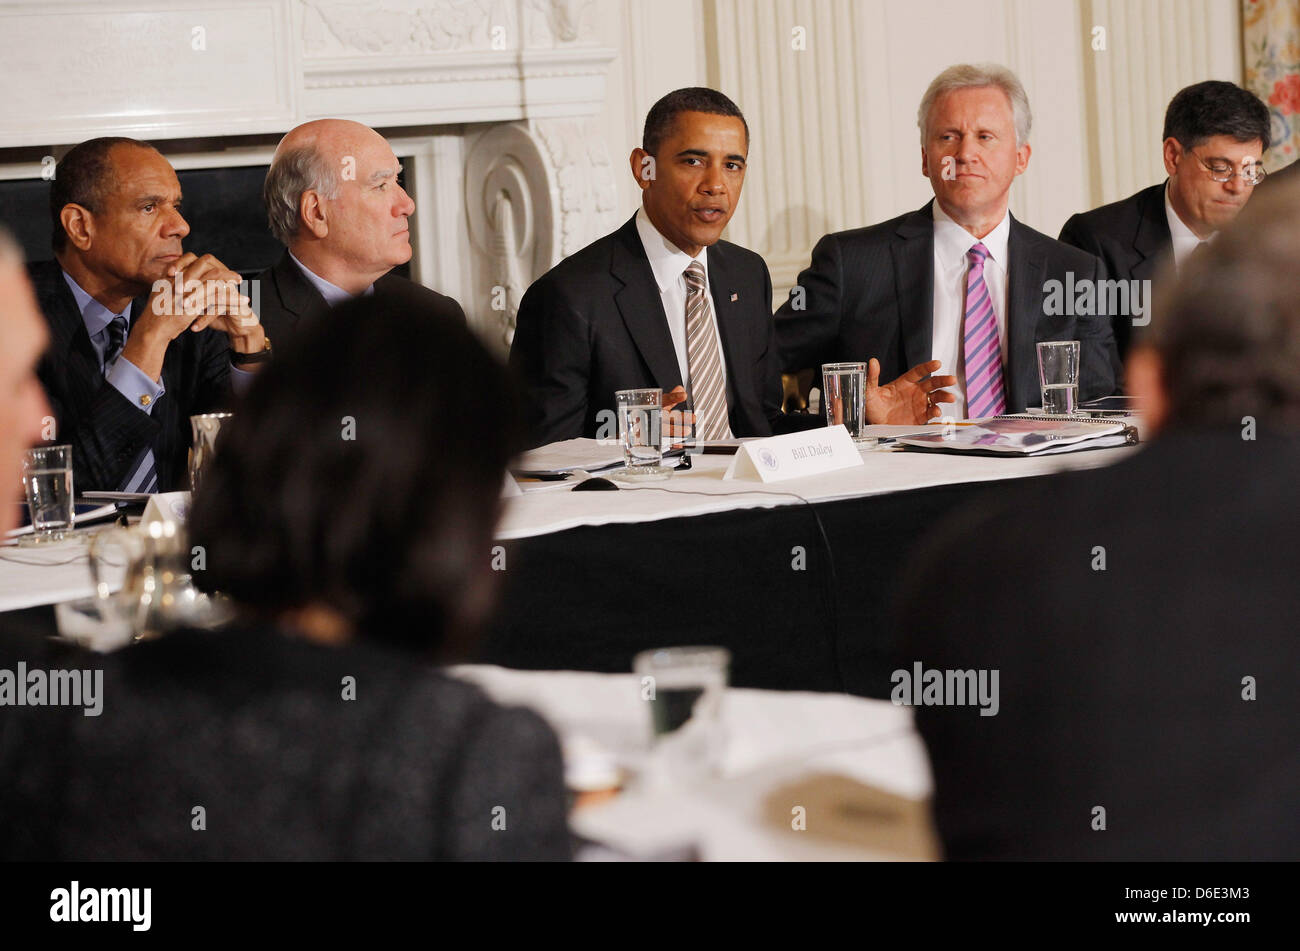 United States President Barack Obama (C) meets with his Council on Jobs and Competitiveness, group of business leaders - Stock Image